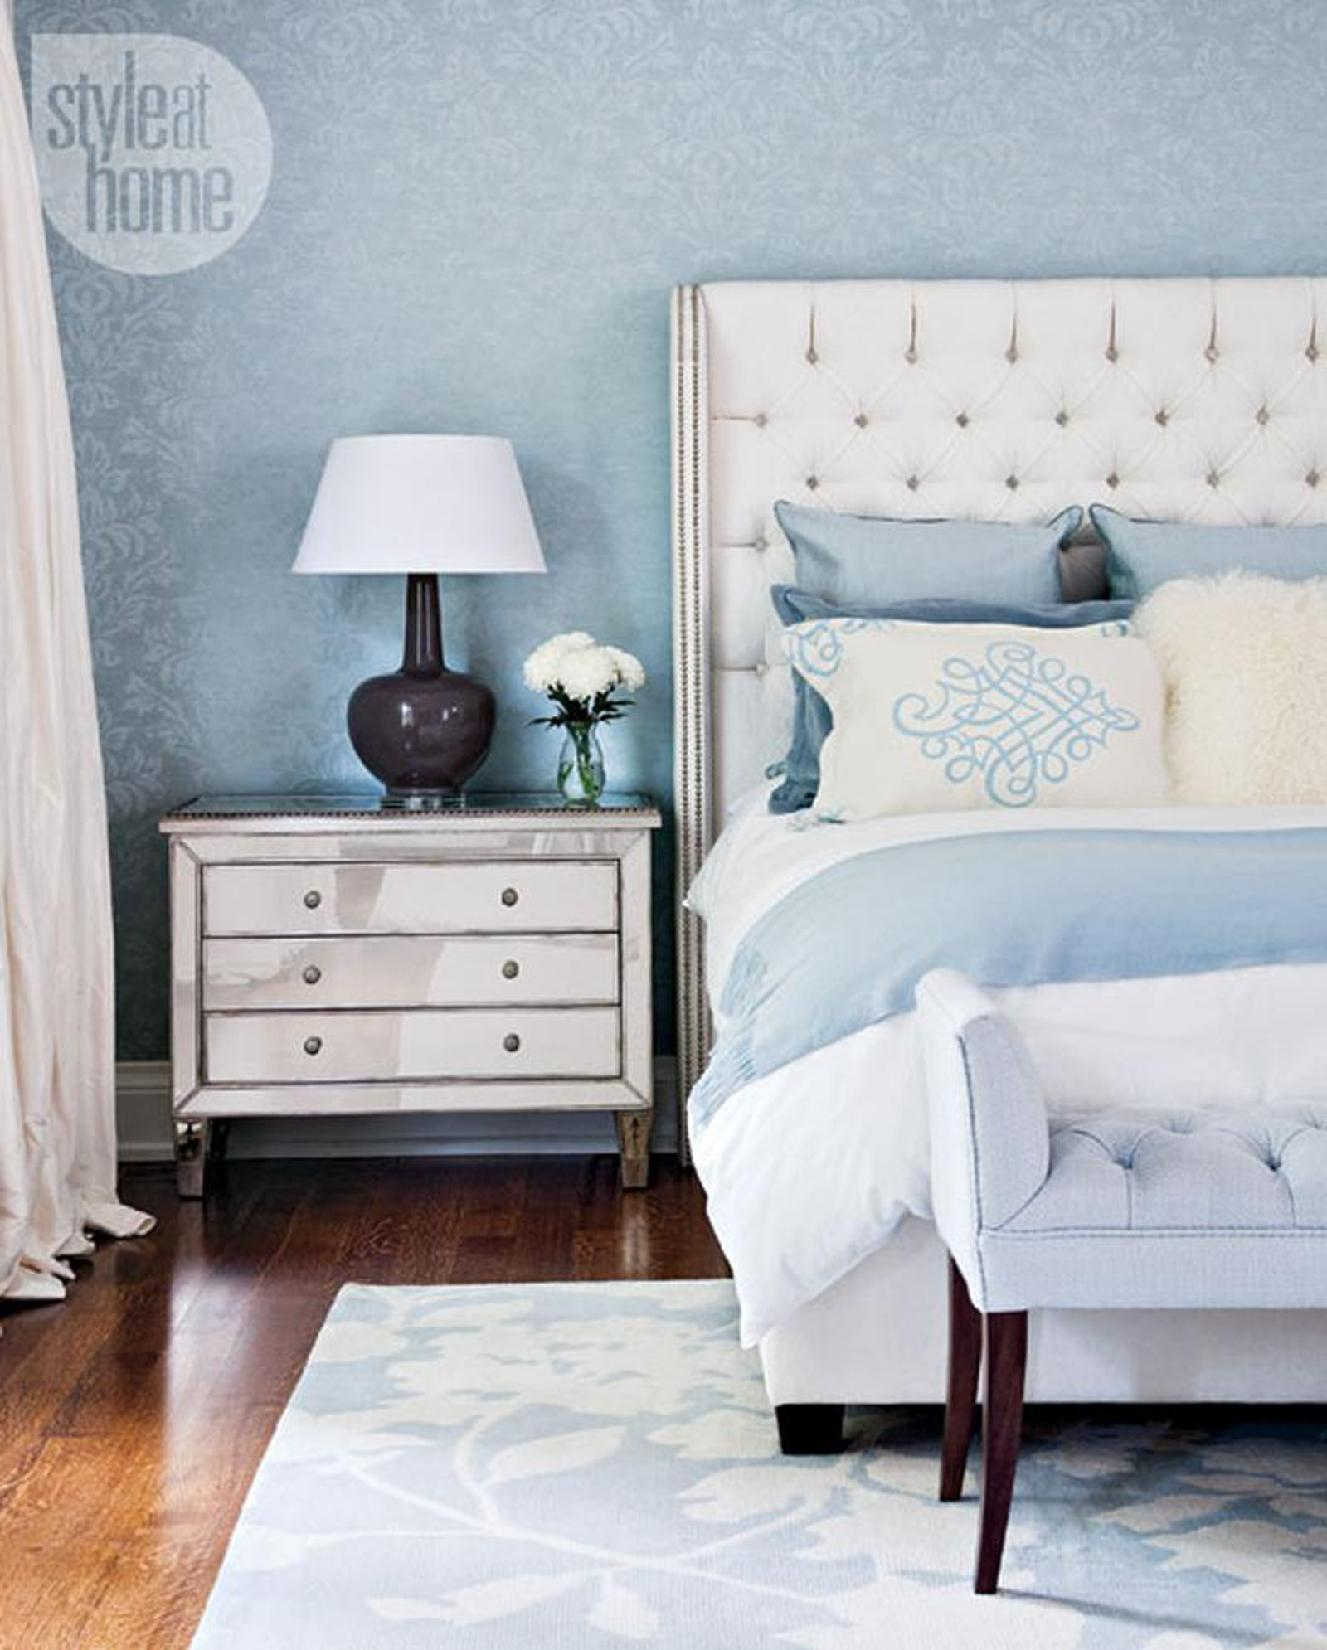 10 Nightstands Perfect For Any Bedroom Style At Home